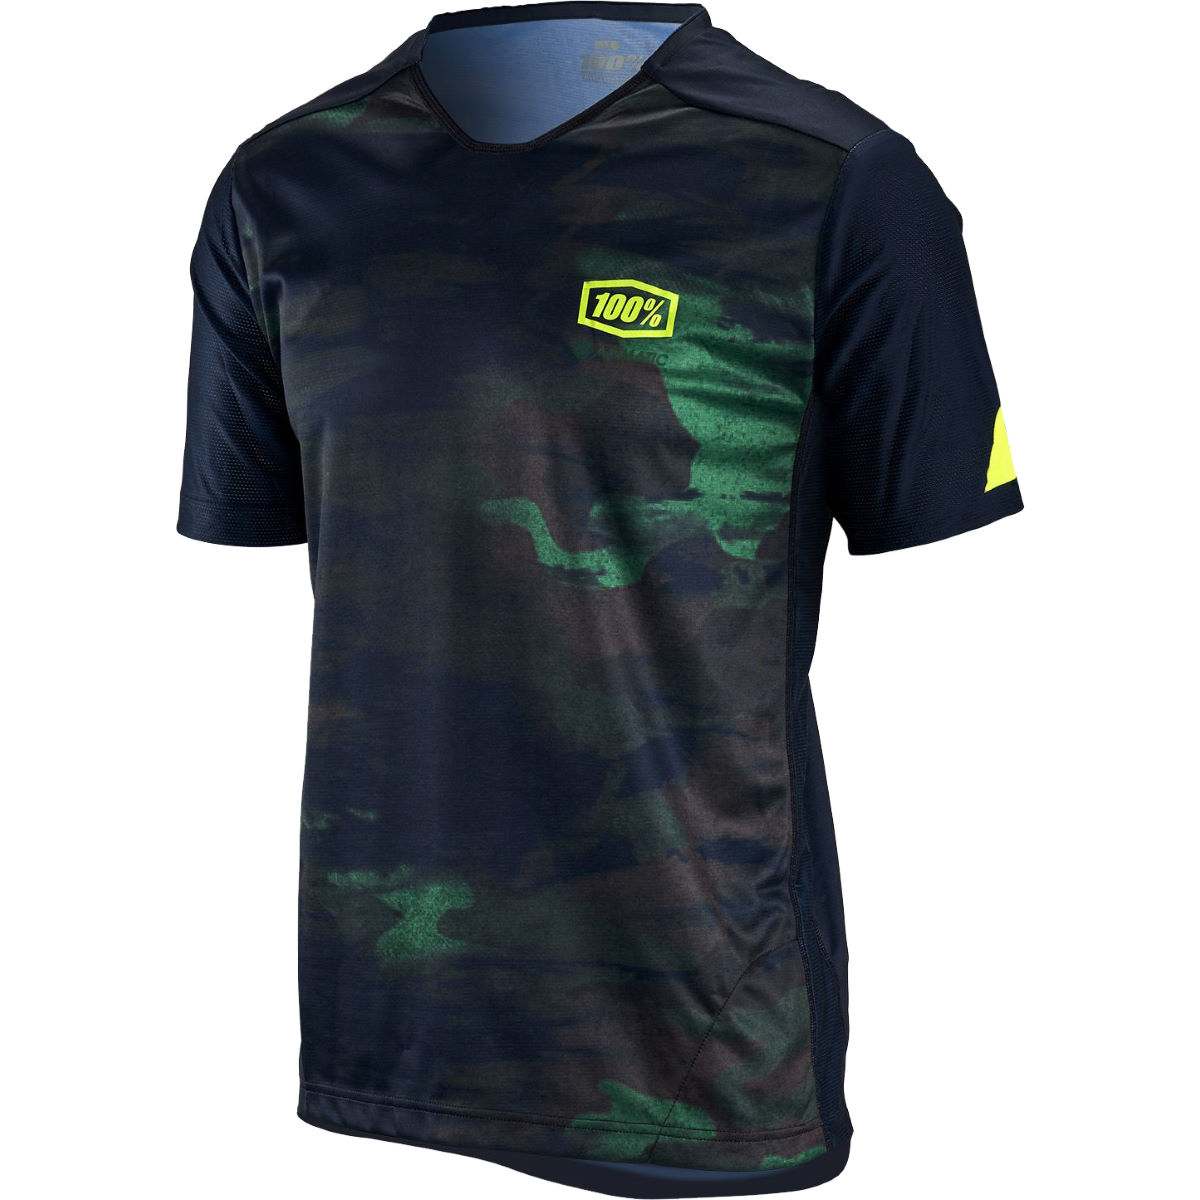 100% Airmatic LE Jersey - Maillots